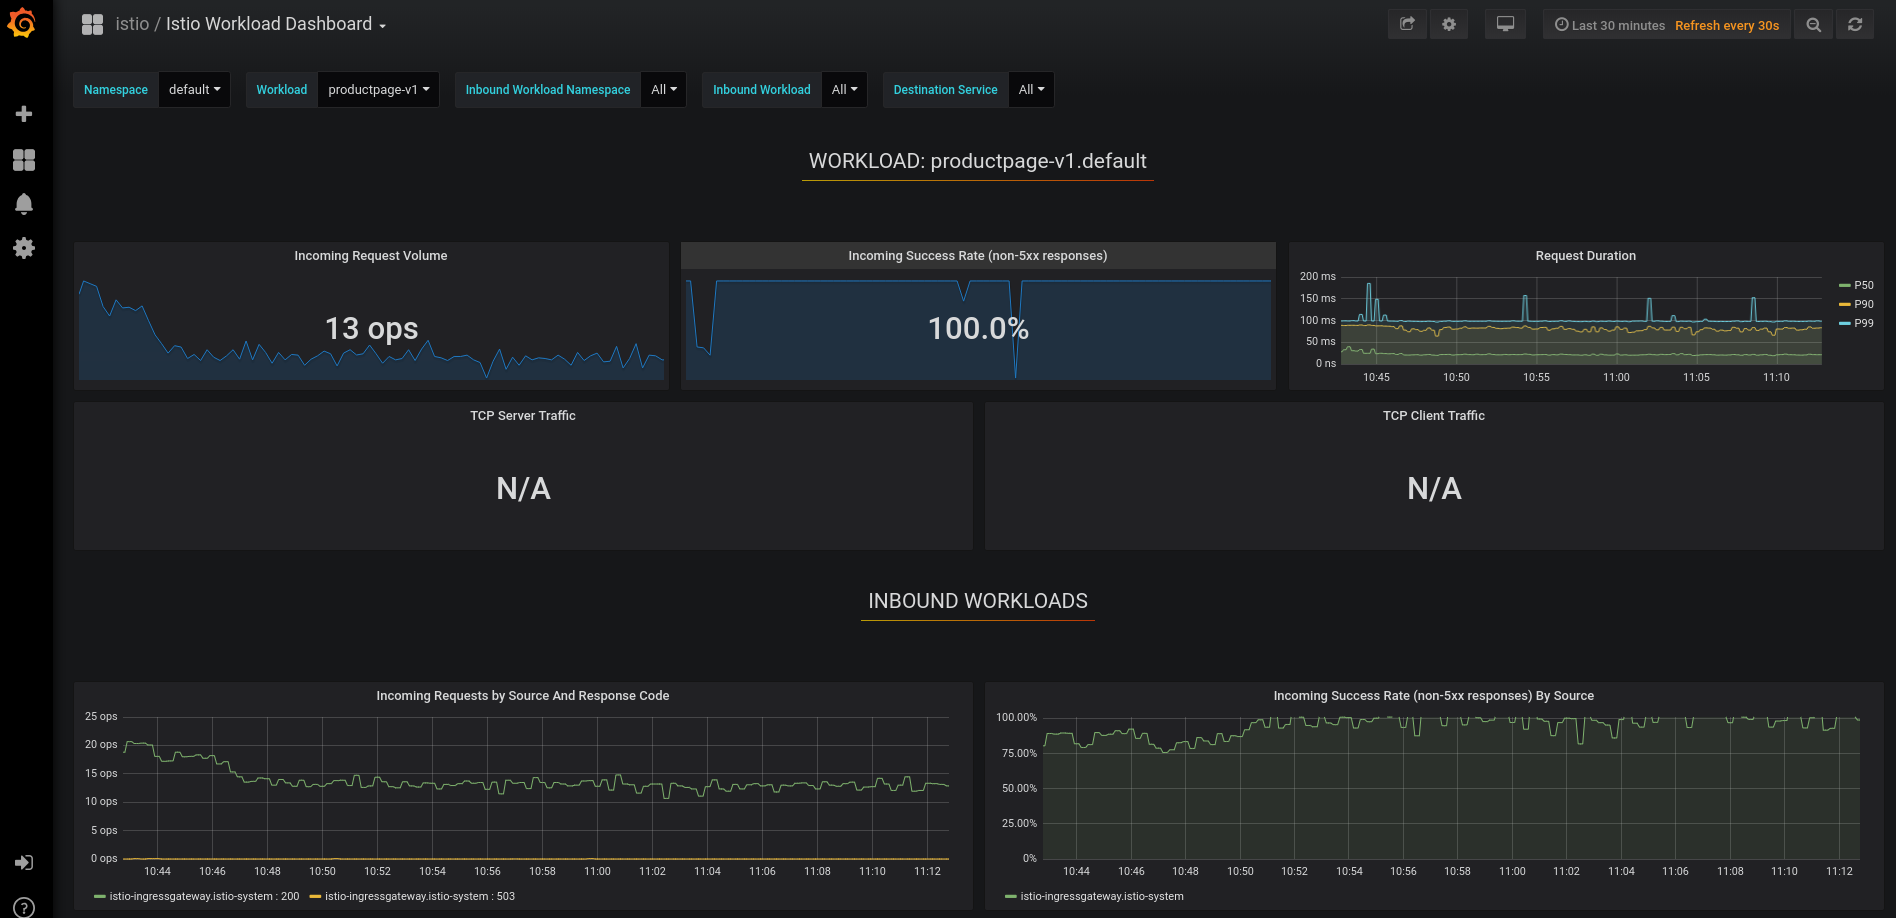 Grafana - Istio Workload Dashboard